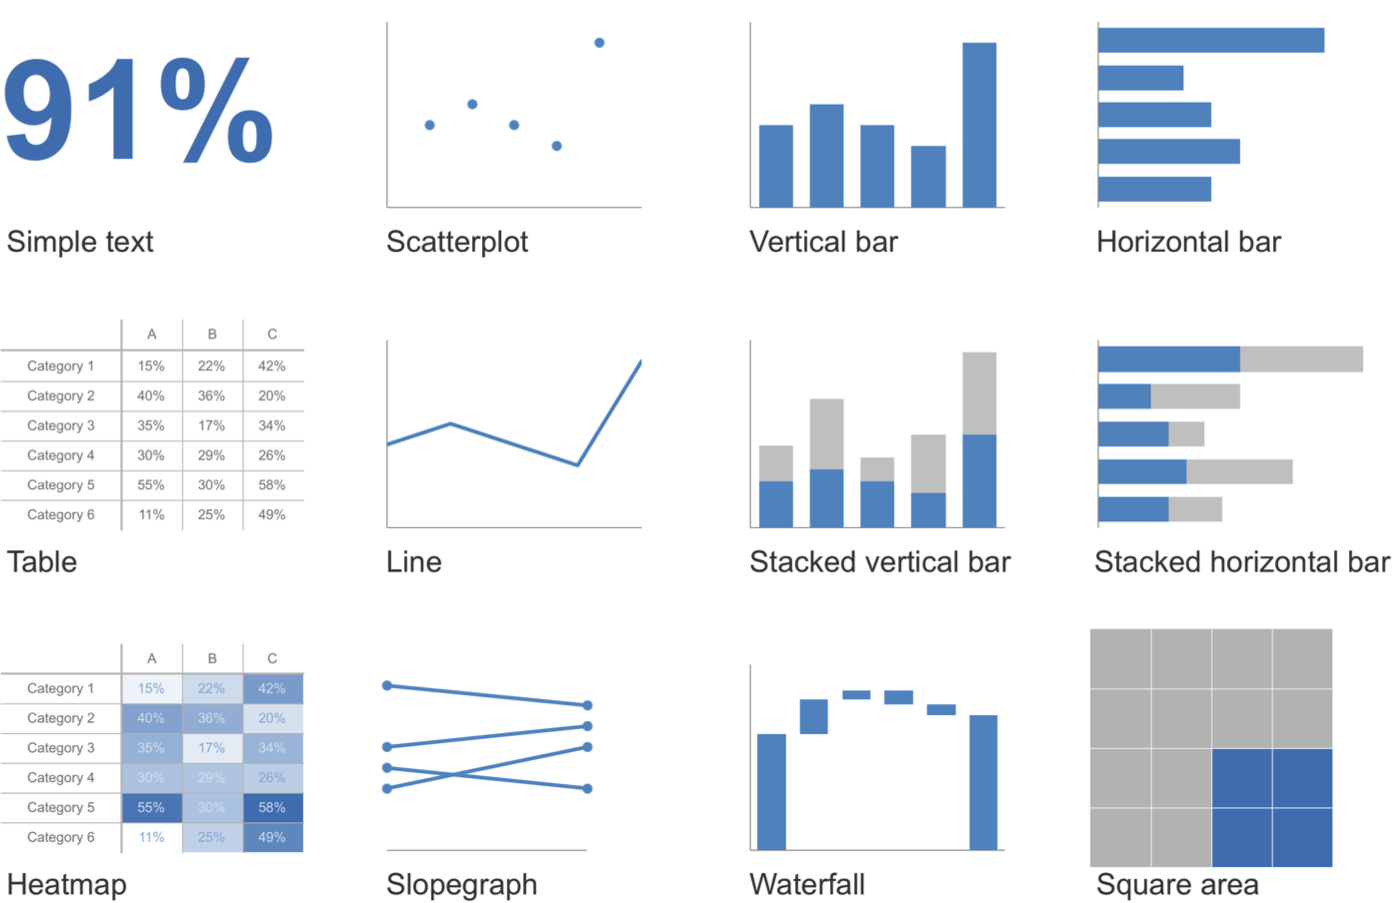 From   storytelling with data: a data visualization guide for business professionals   (Wiley 2015).